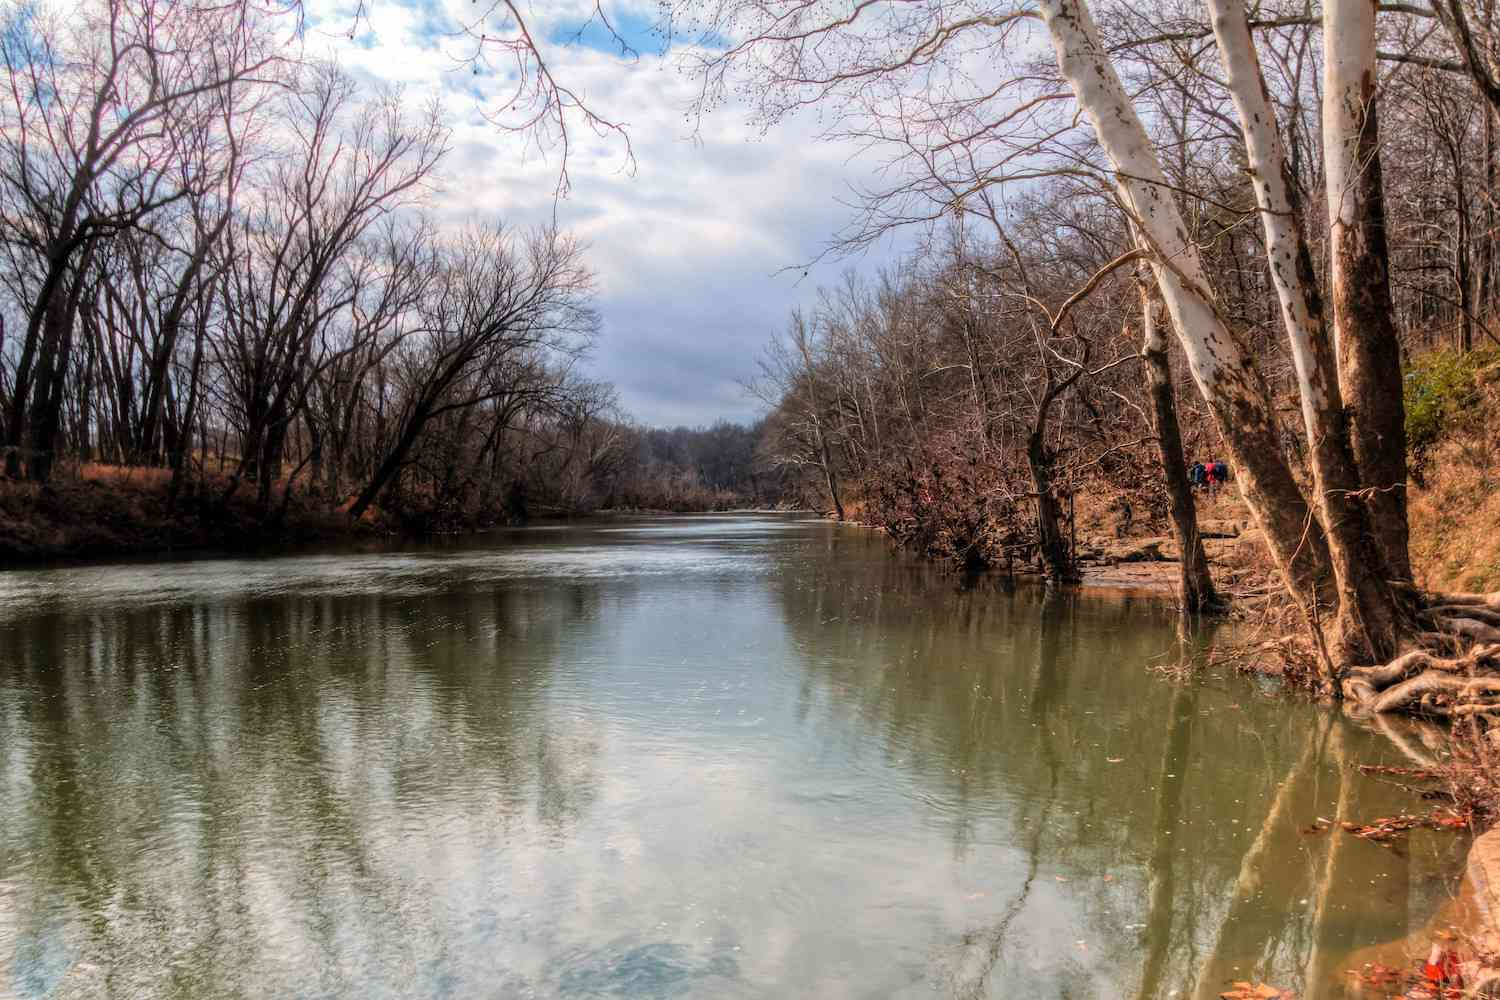 Tennessee's Duck River on a cloudy winter day